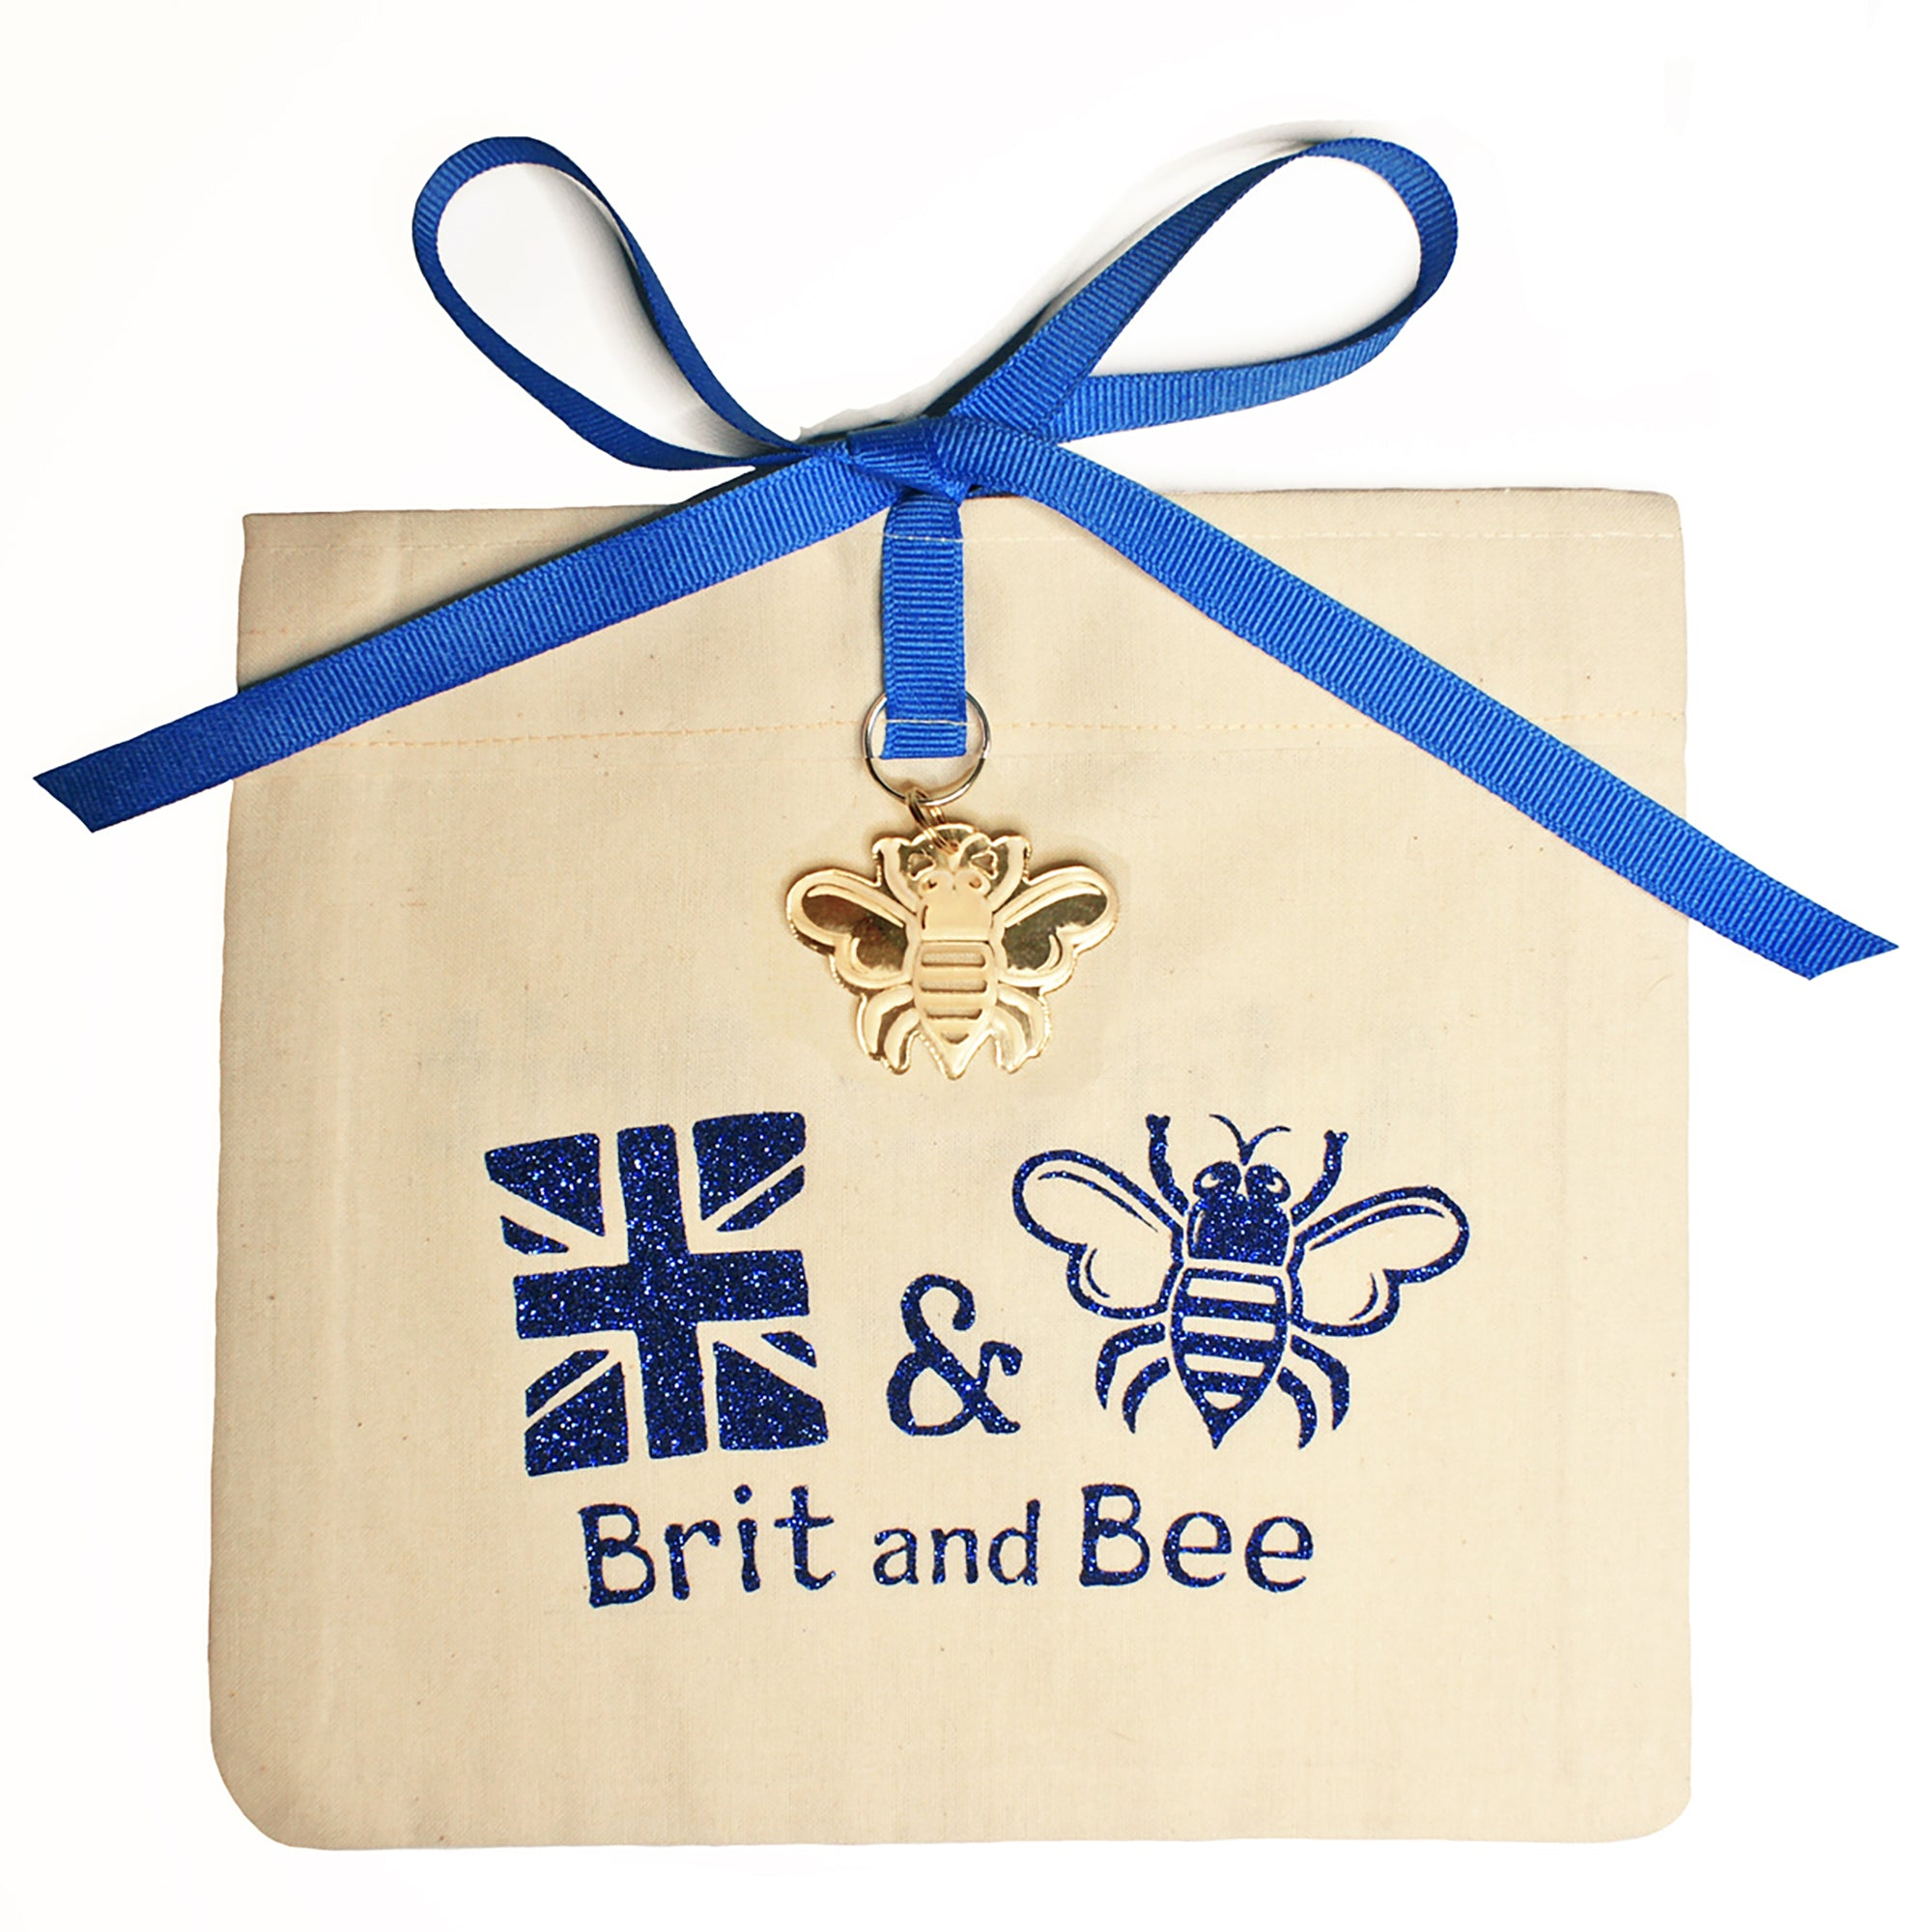 Alpha Xi Delta Decal | Brit and Bee